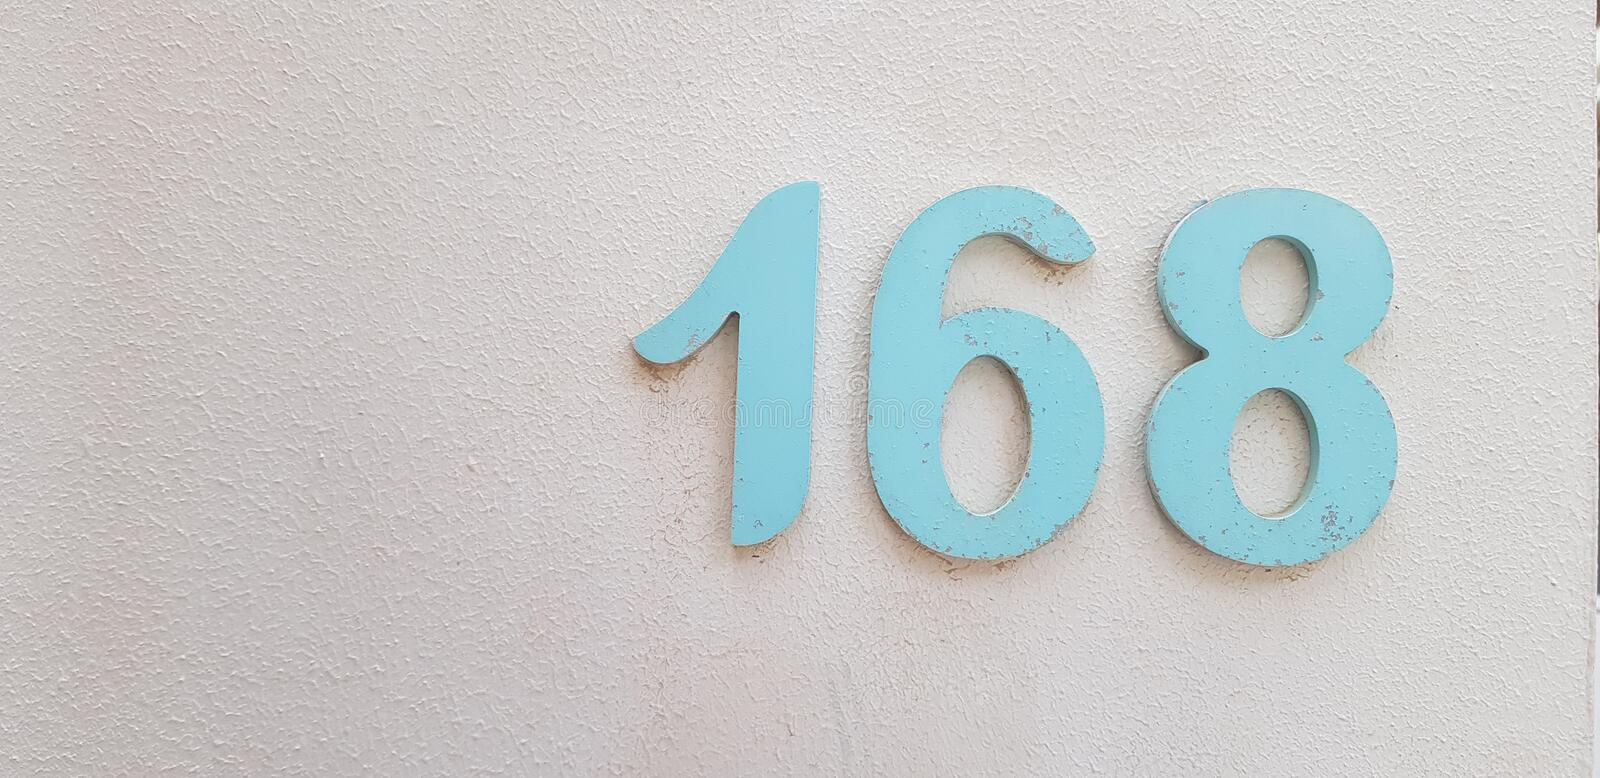 Number 168 on white painted wall royalty free stock images